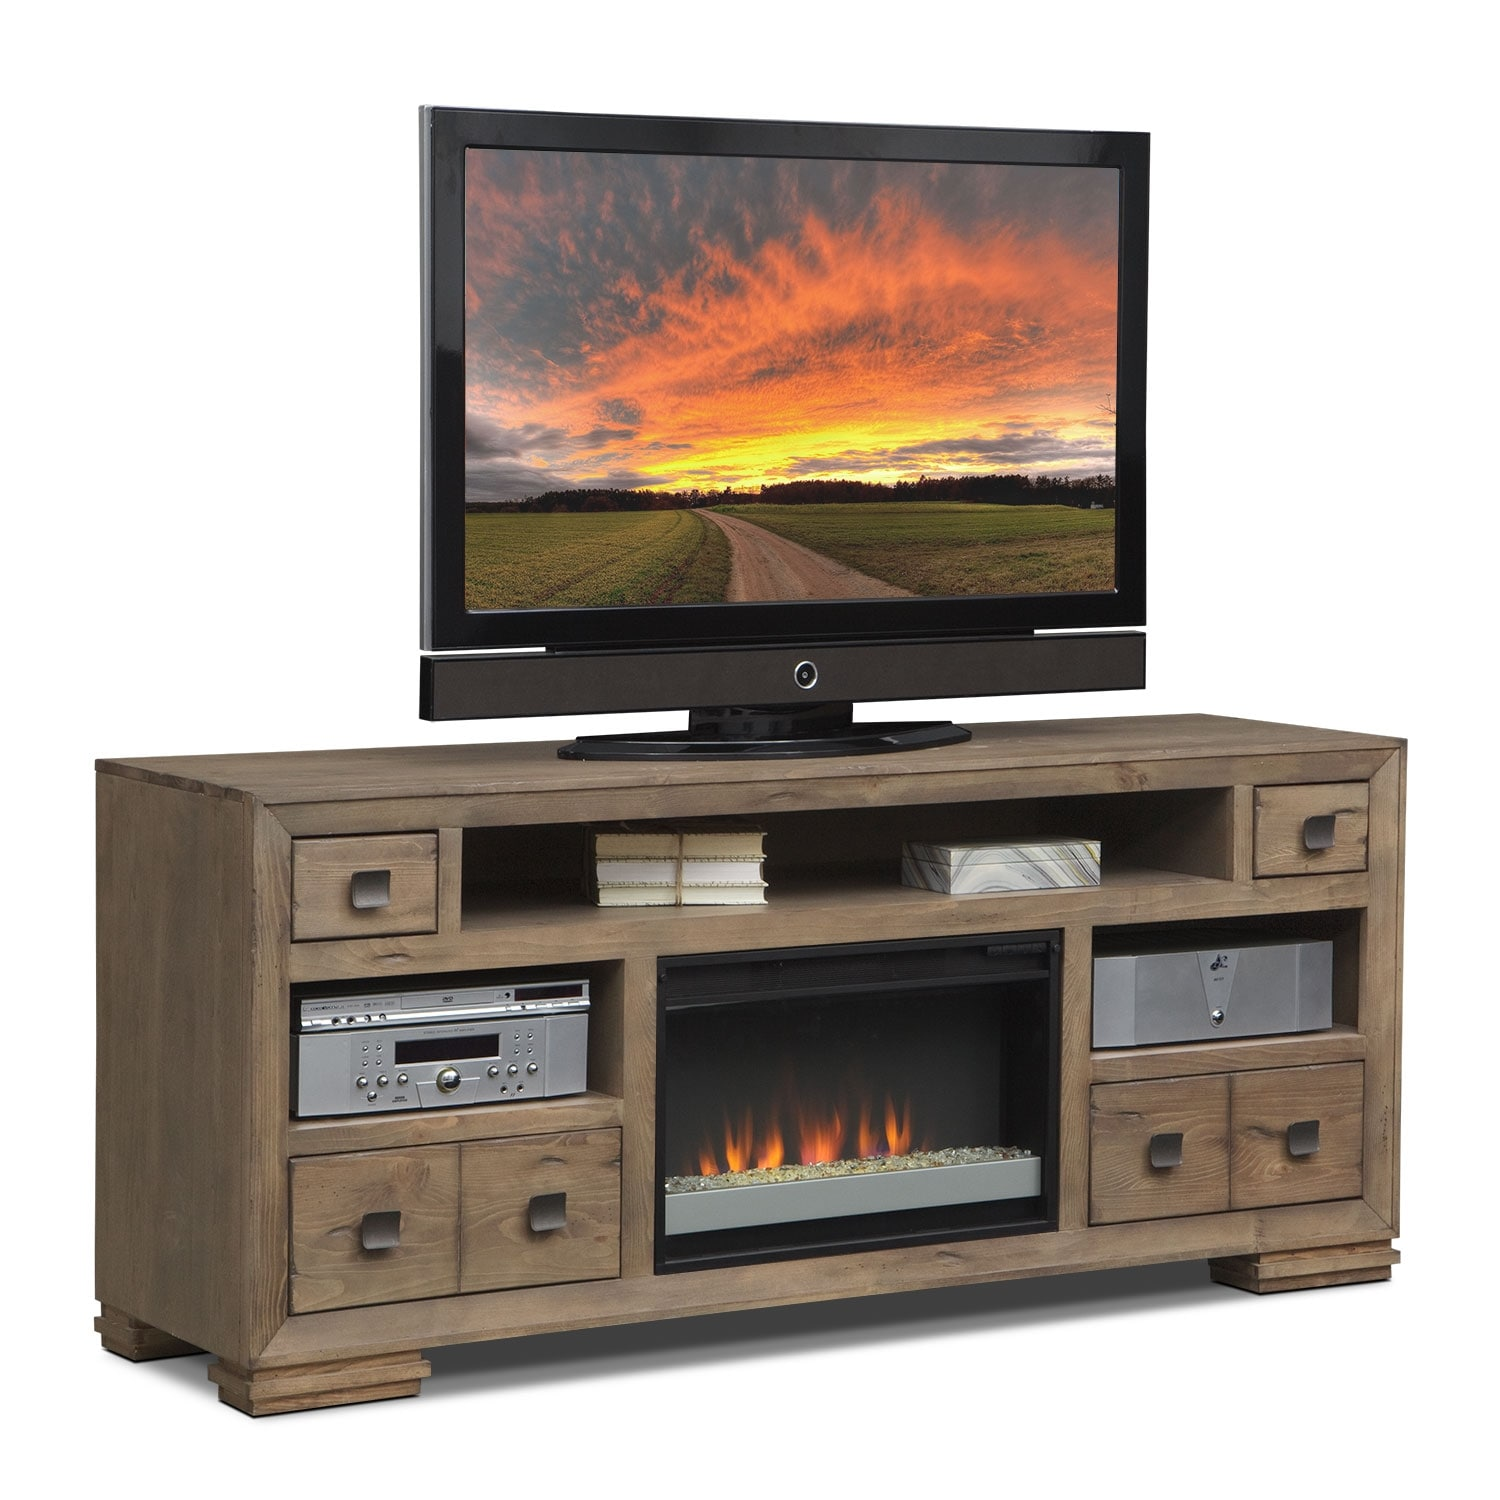 "Mesa 74"" Fireplace TV Stand with Contemporary Insert - Distressed Pine"